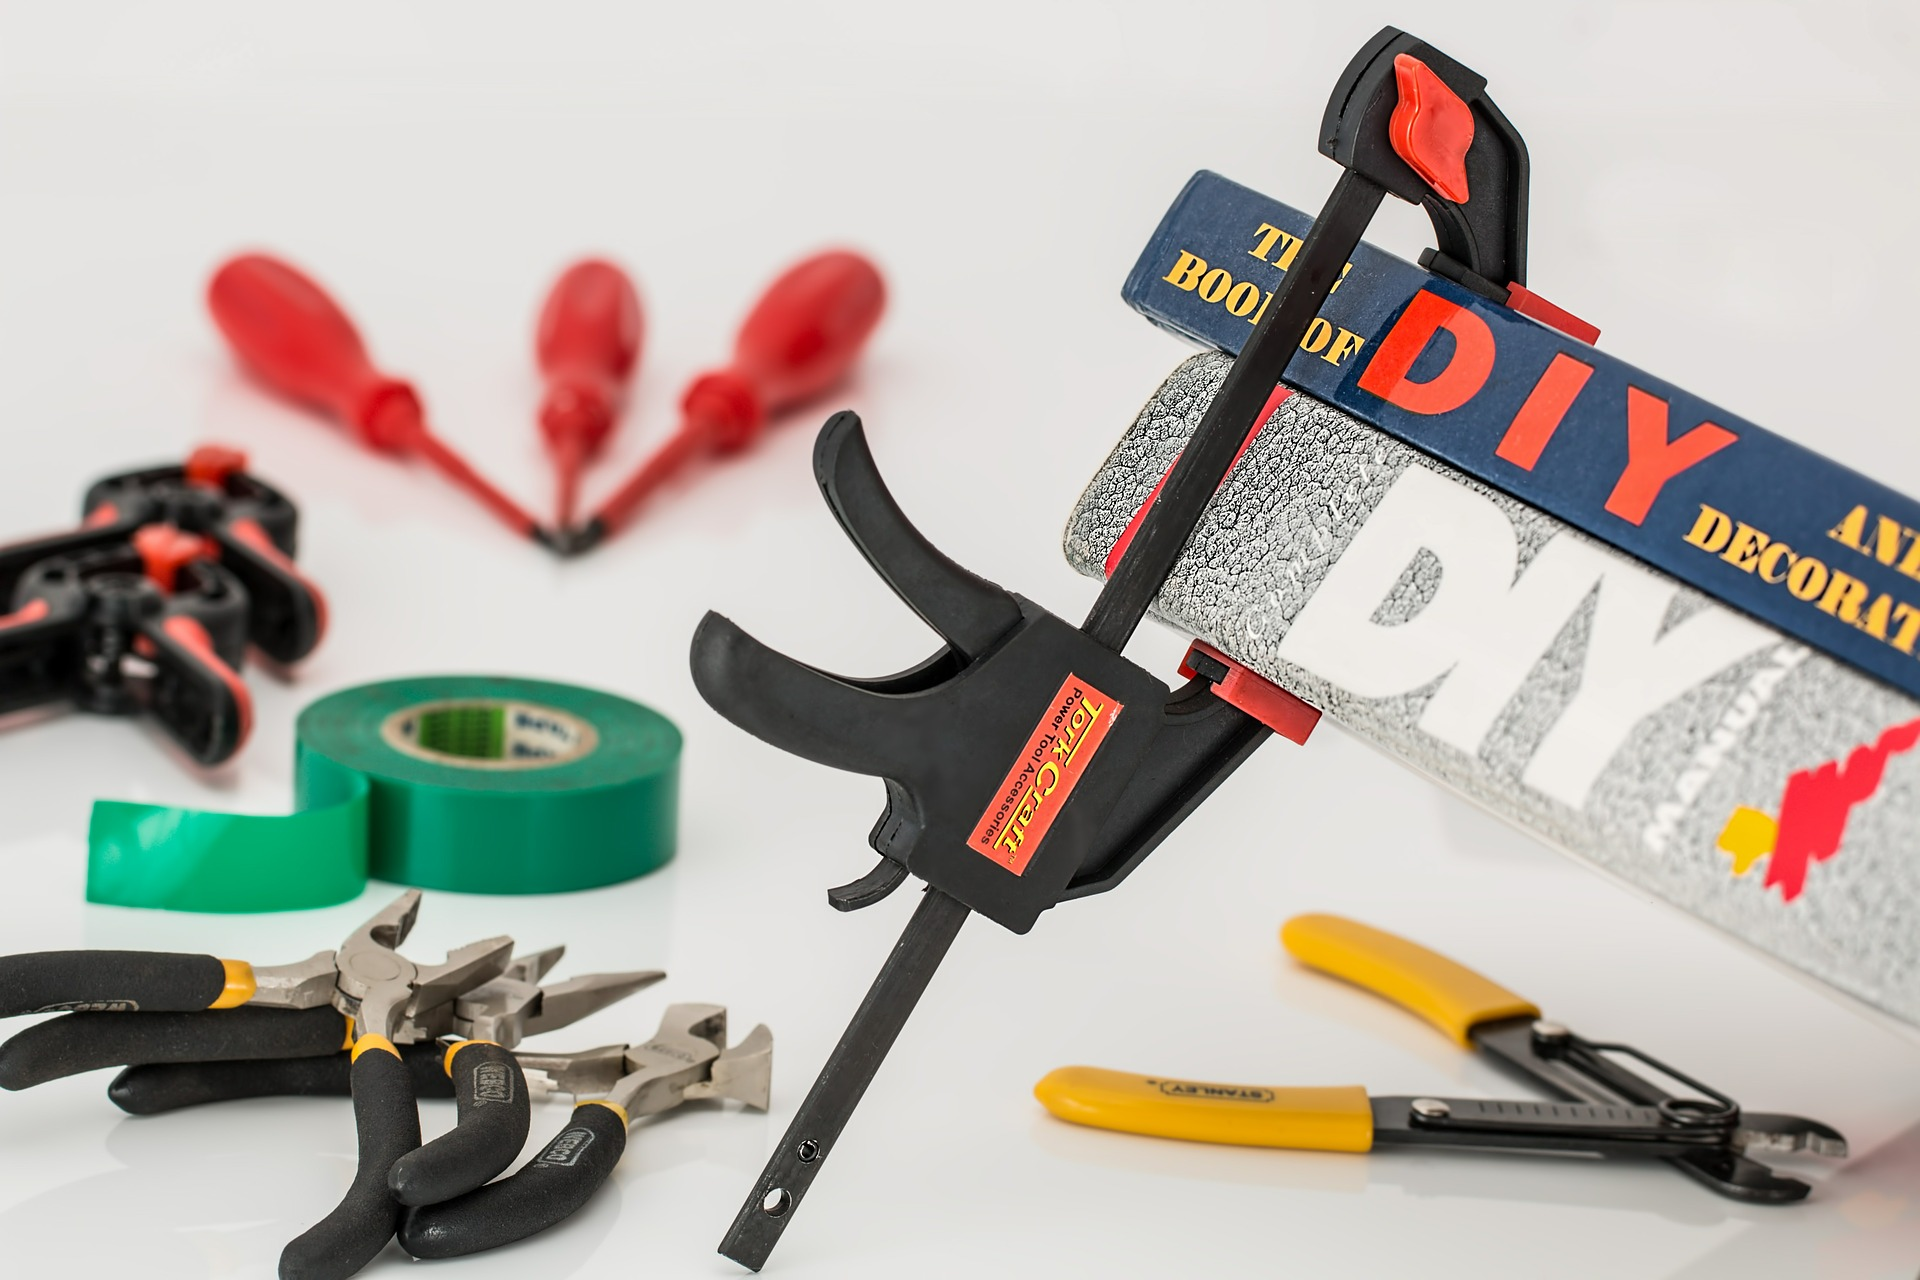 DIY projects on the rise but can be costly to fix